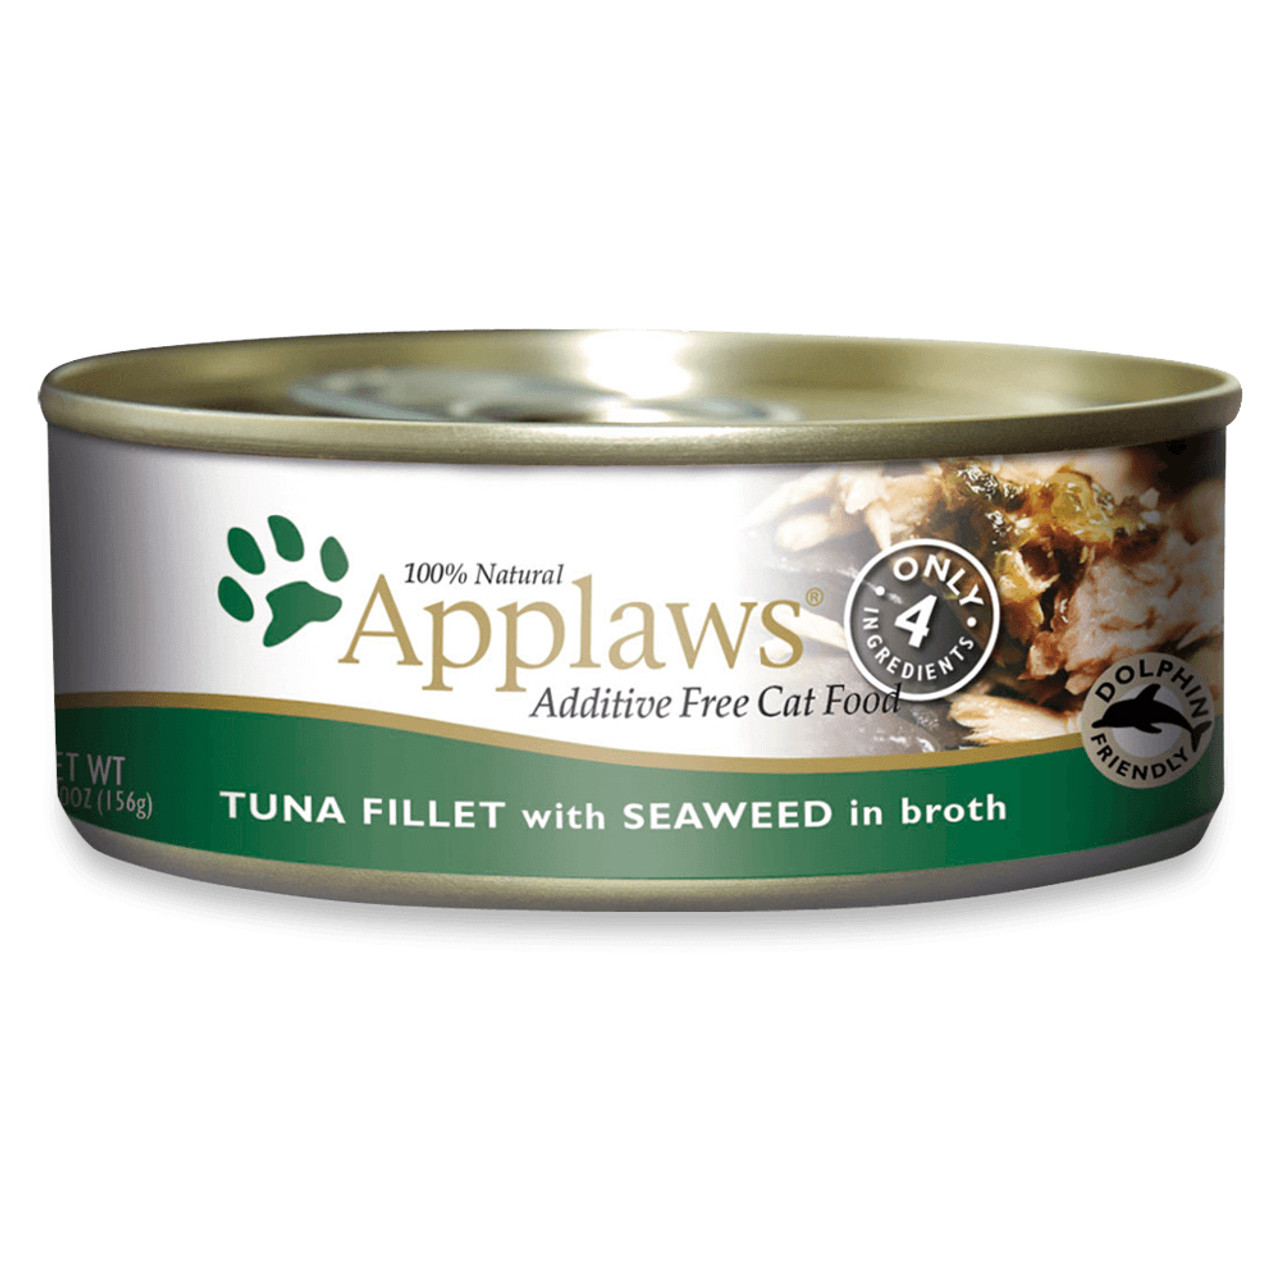 Applaws Tuna Fillet with Seaweed Canned Cat Food